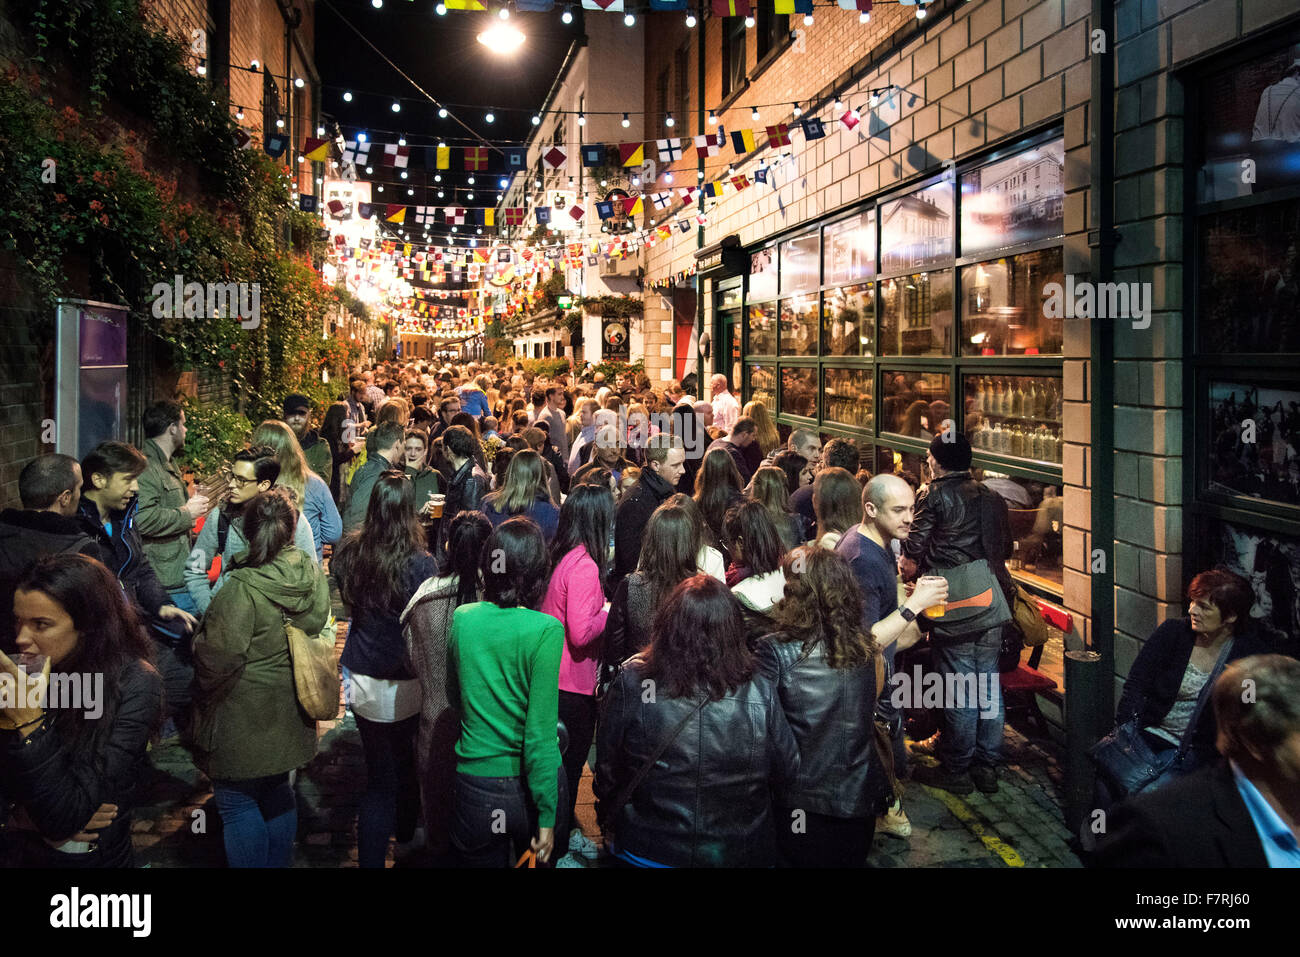 Belfast Culture Night crowds pubs bars duke york northern ireland - Stock Image